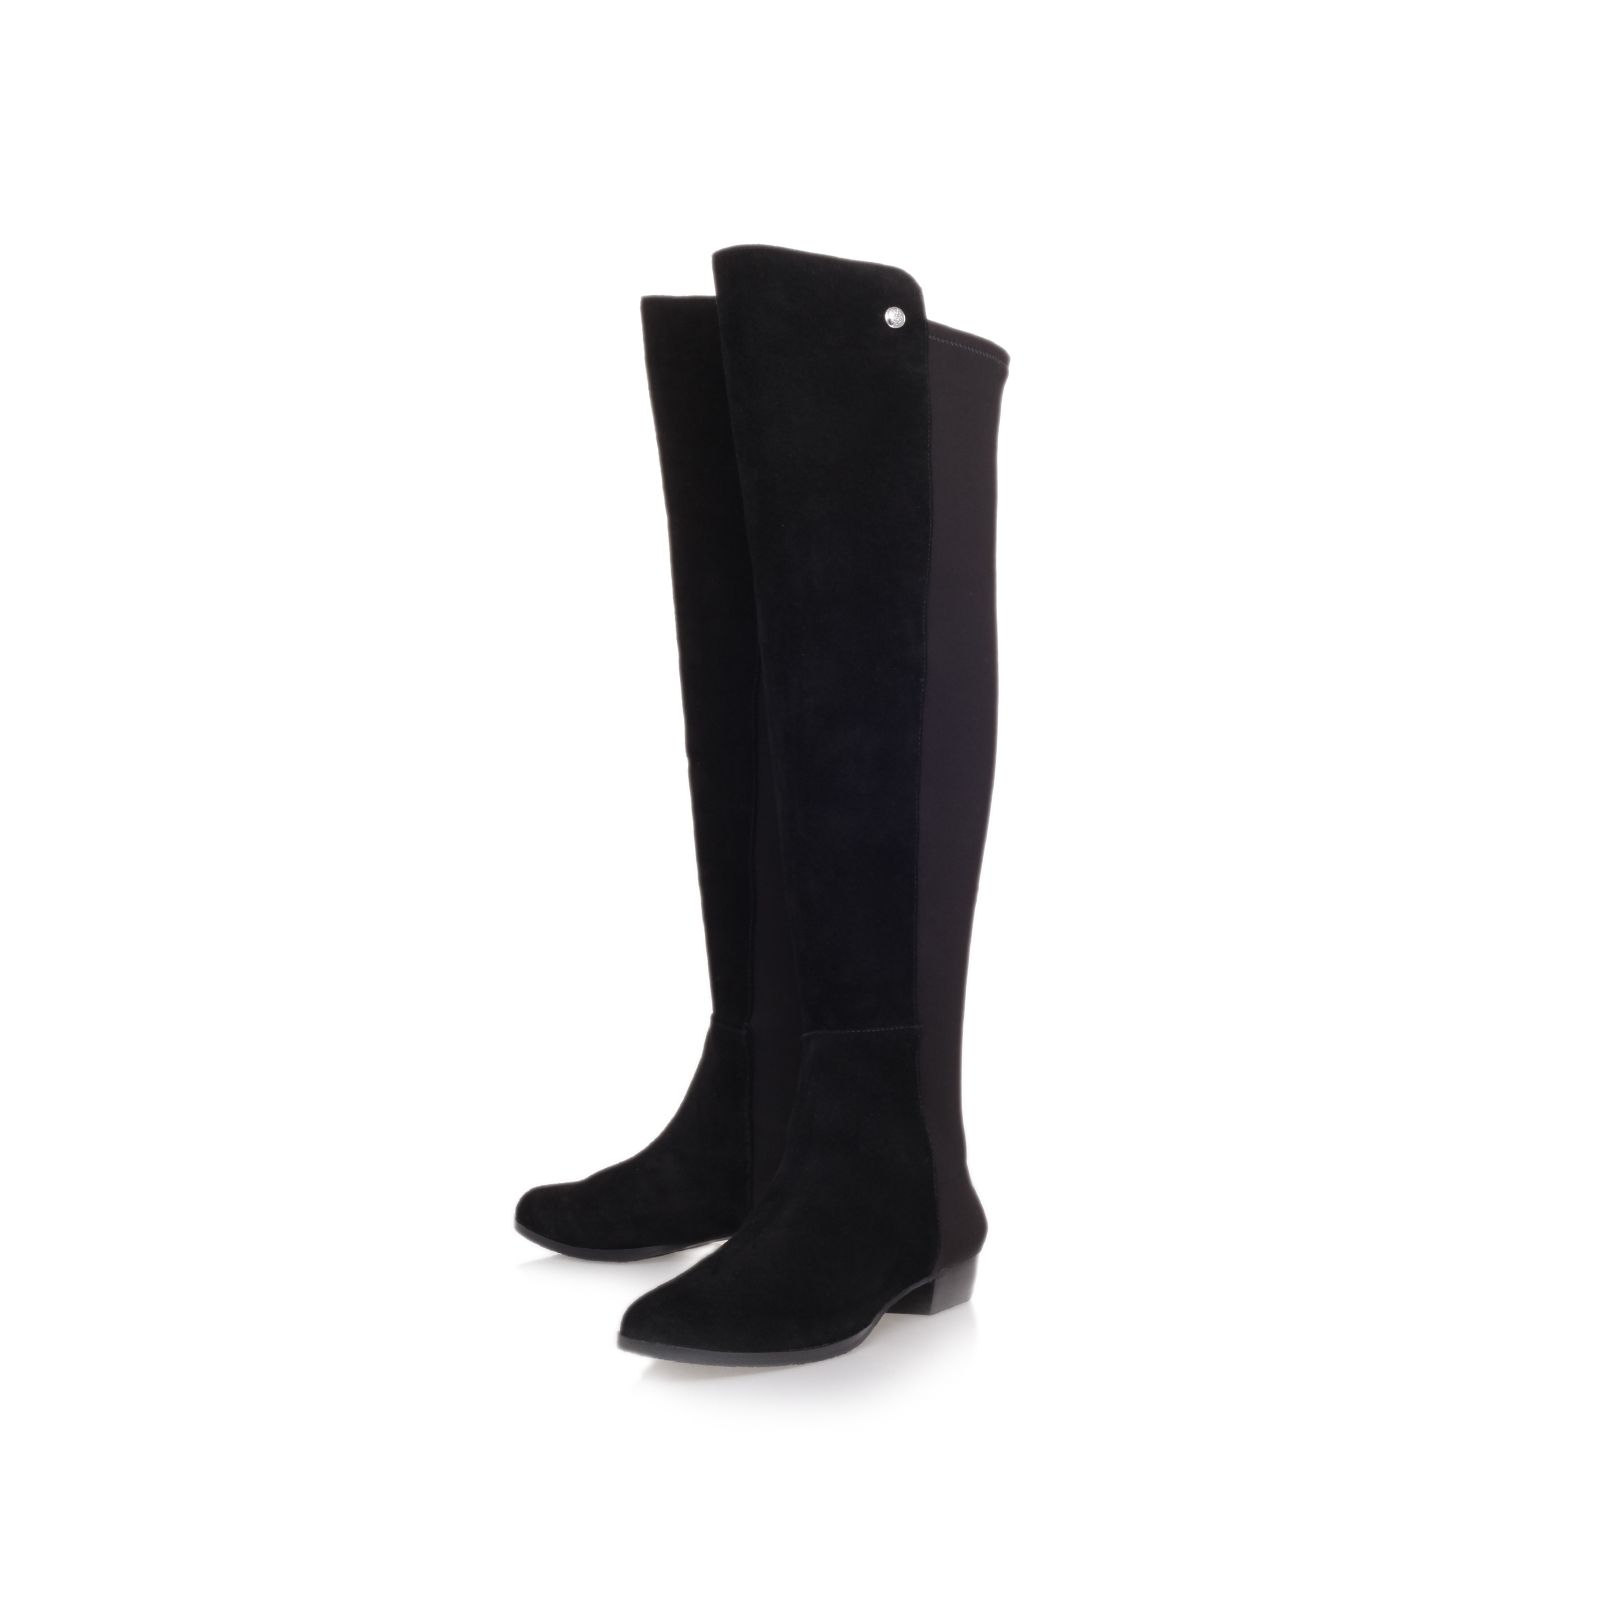 Vatero low heel knee boots